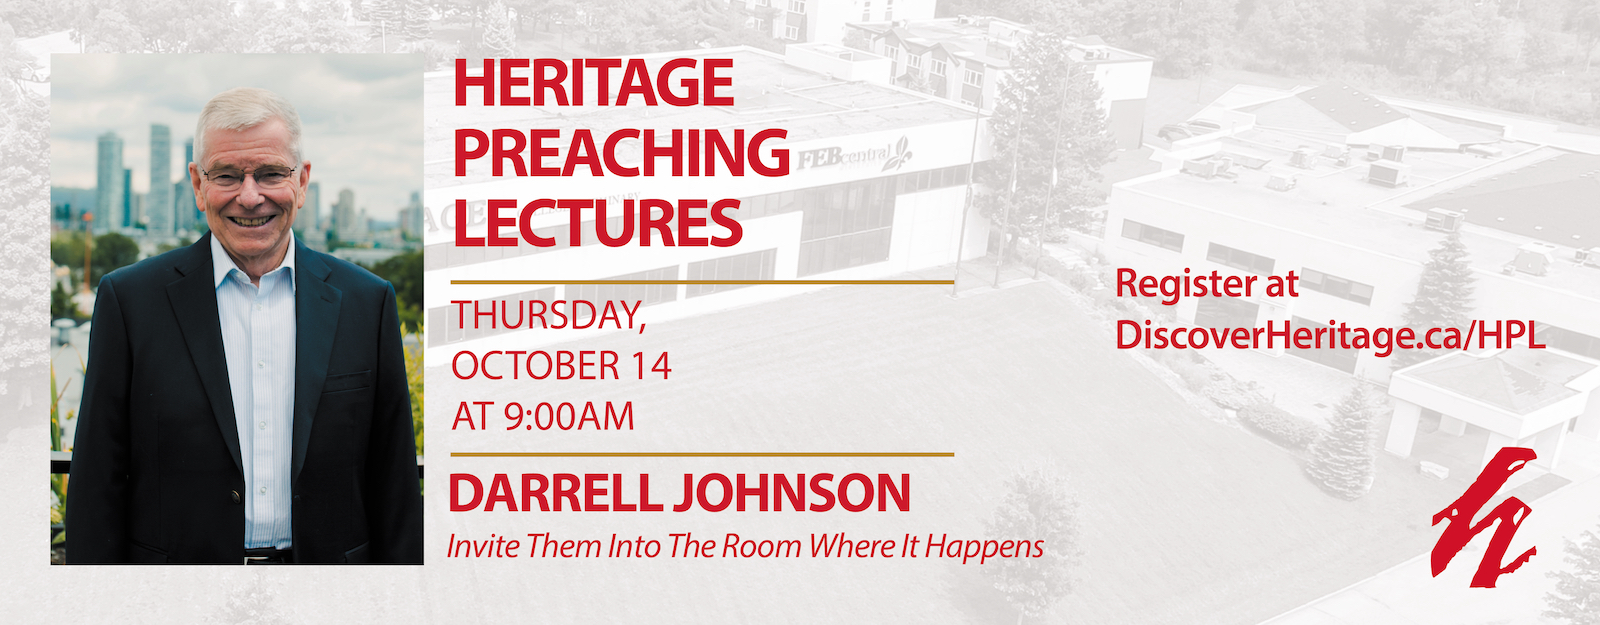 Heritage Preaching Lectures 2021 Welcomes Darrell Johnson